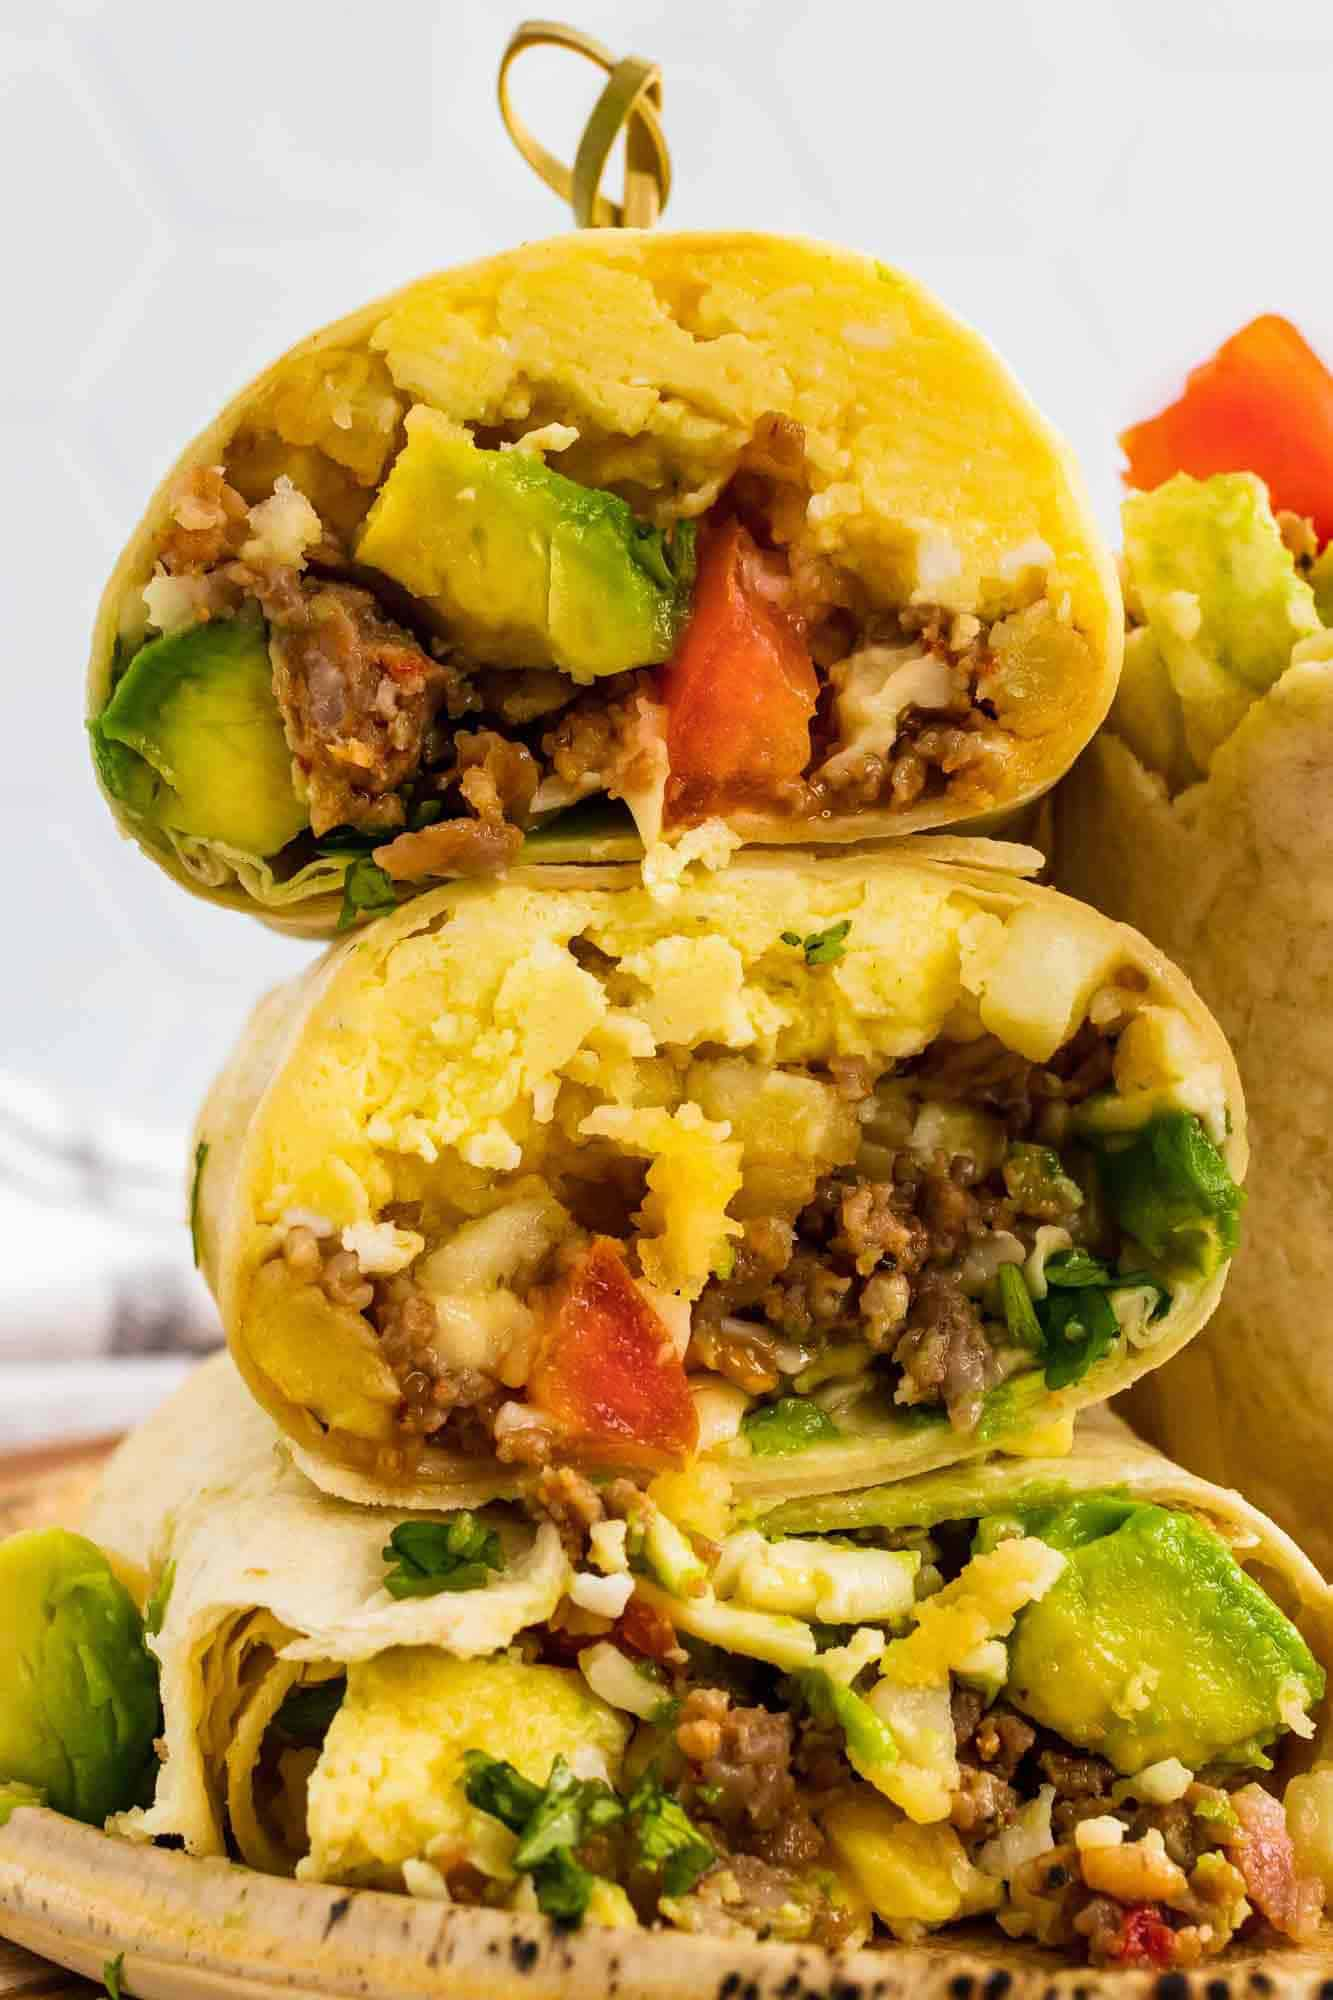 Breakfast burrito stacked on a plate